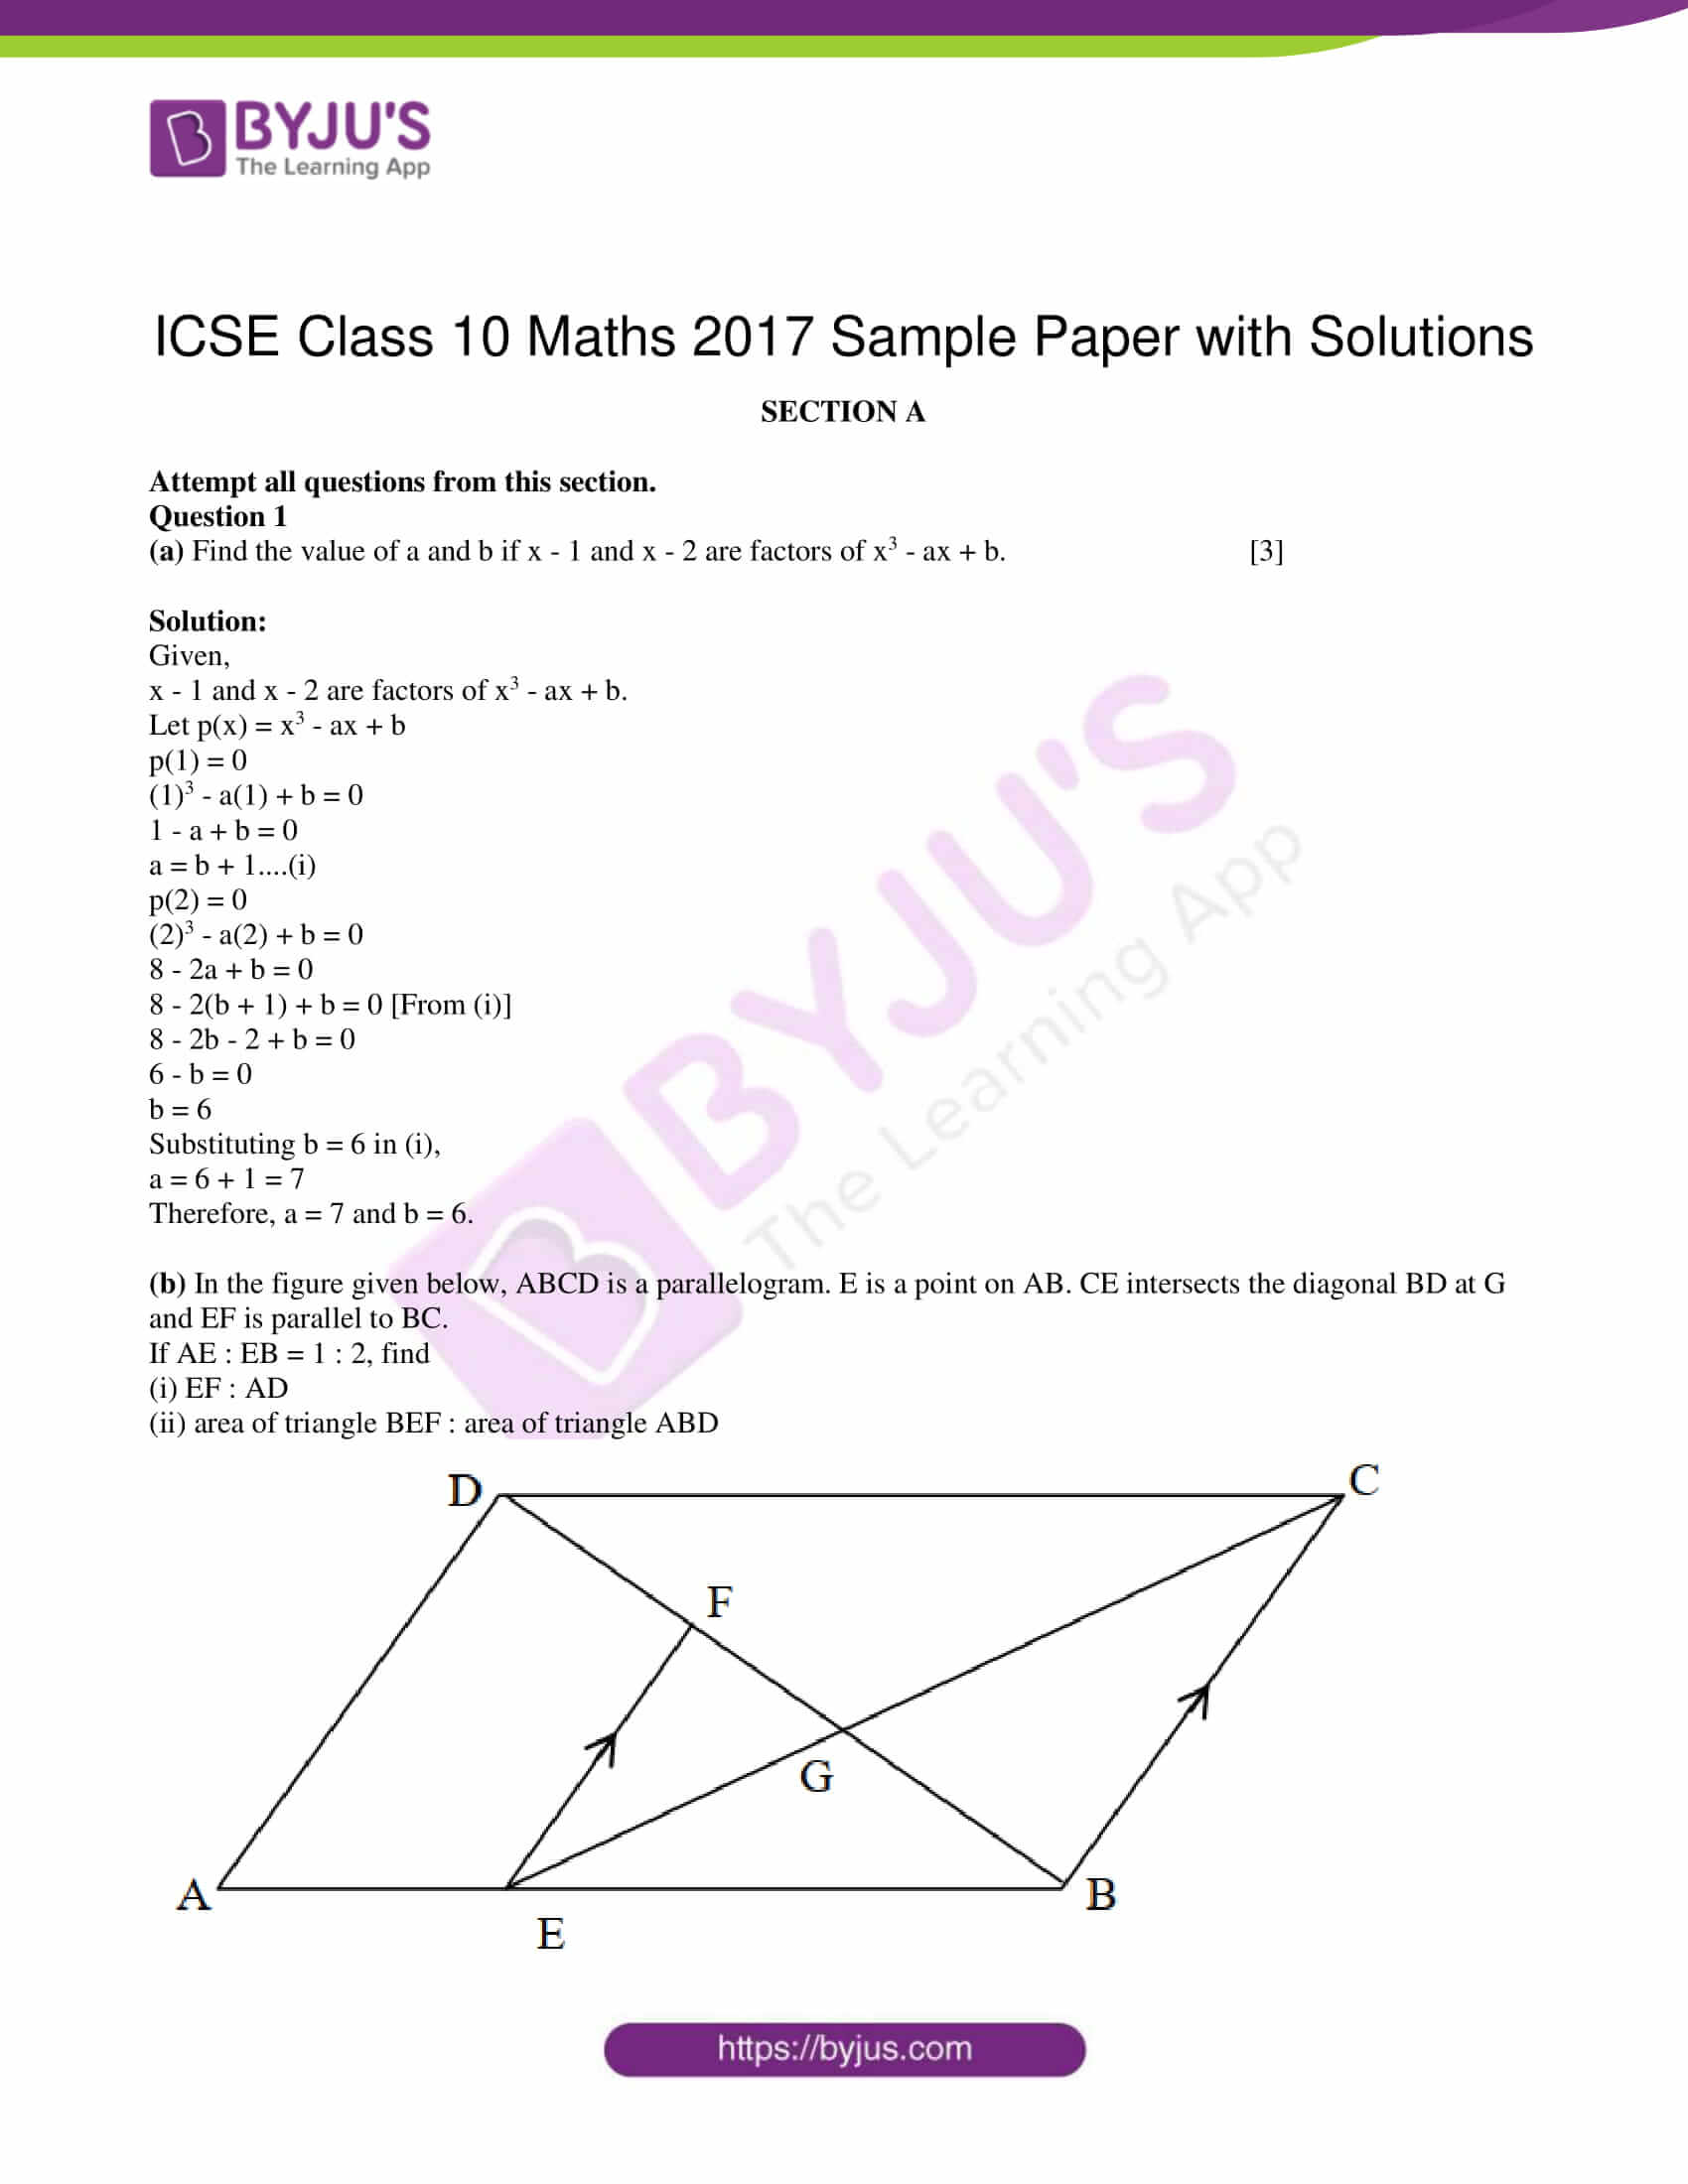 icse class 10 maths 2017 sample paper with solutions 01